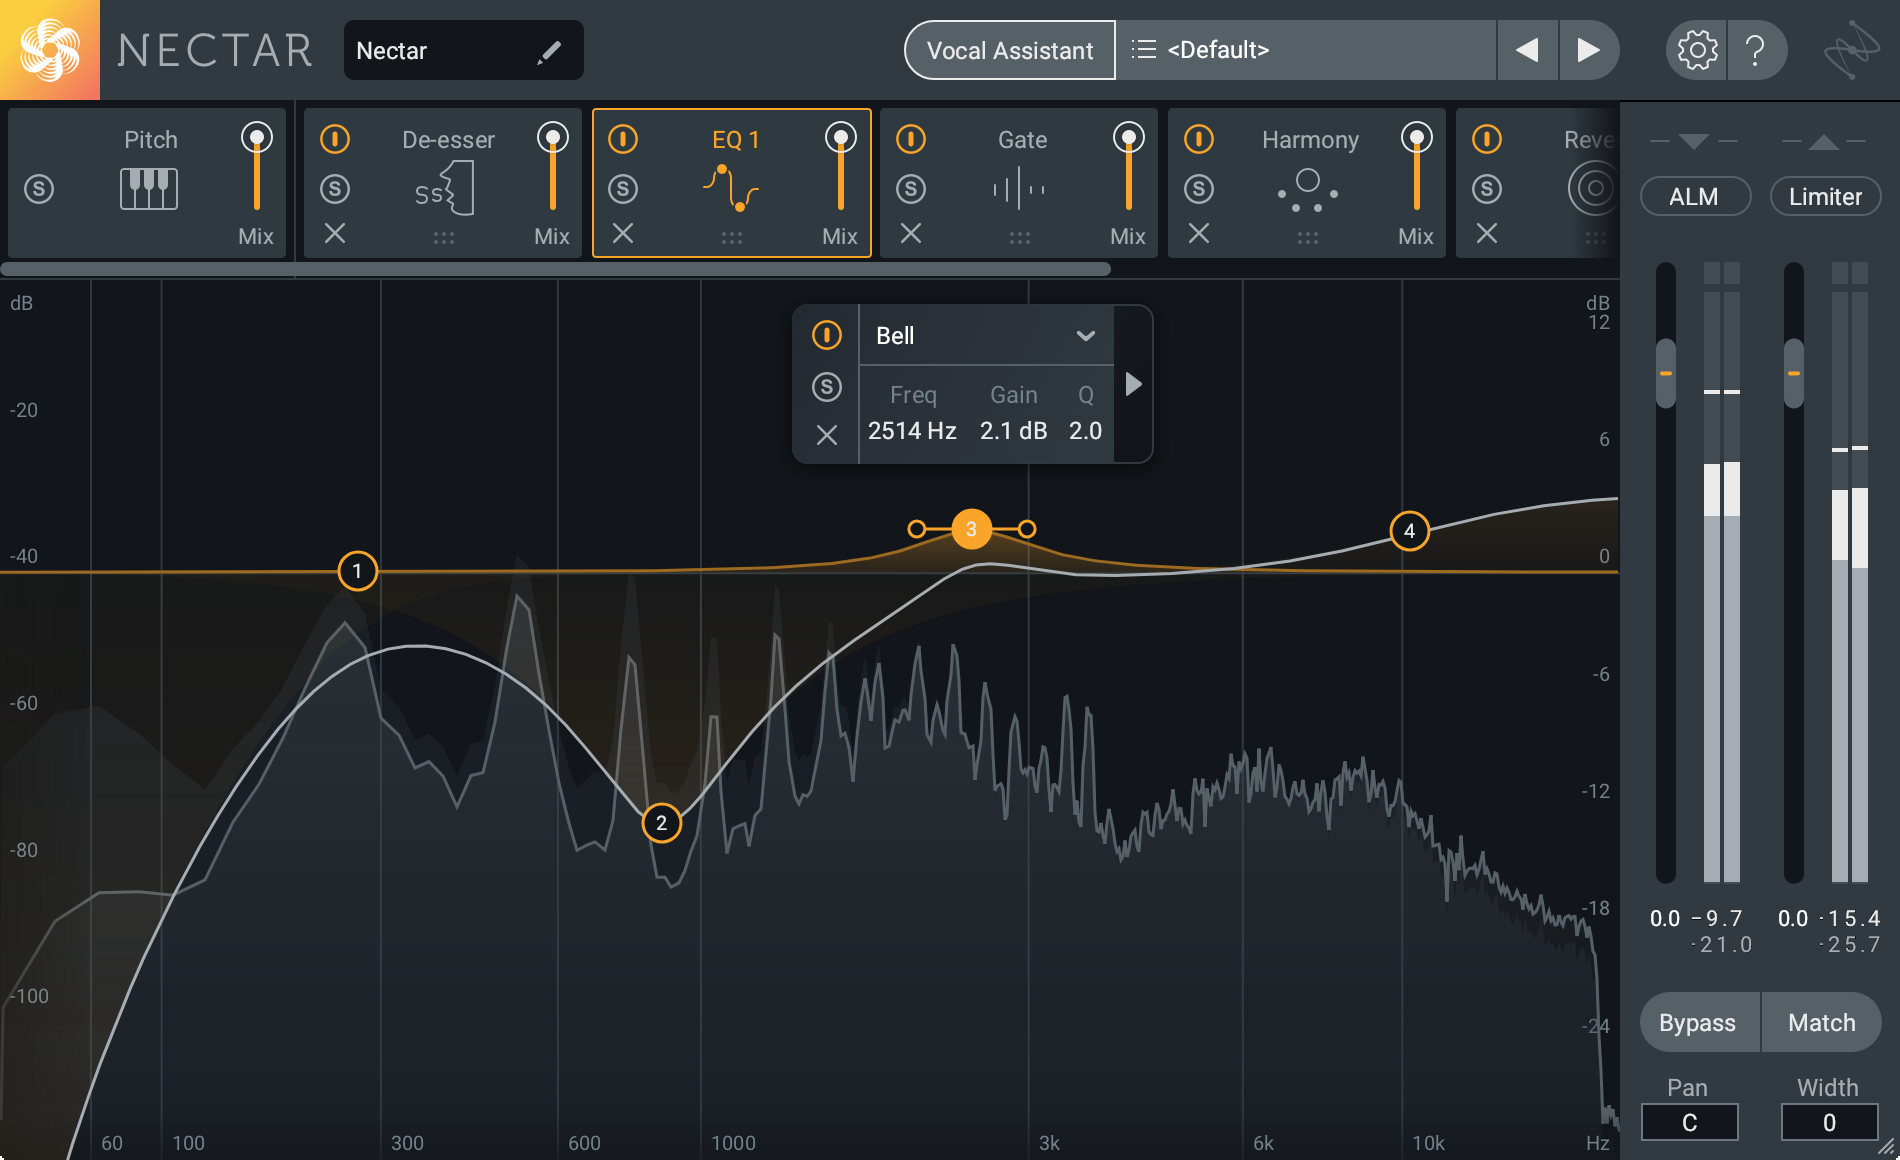 iZotope Nectar 3 | Vocals, in the mix